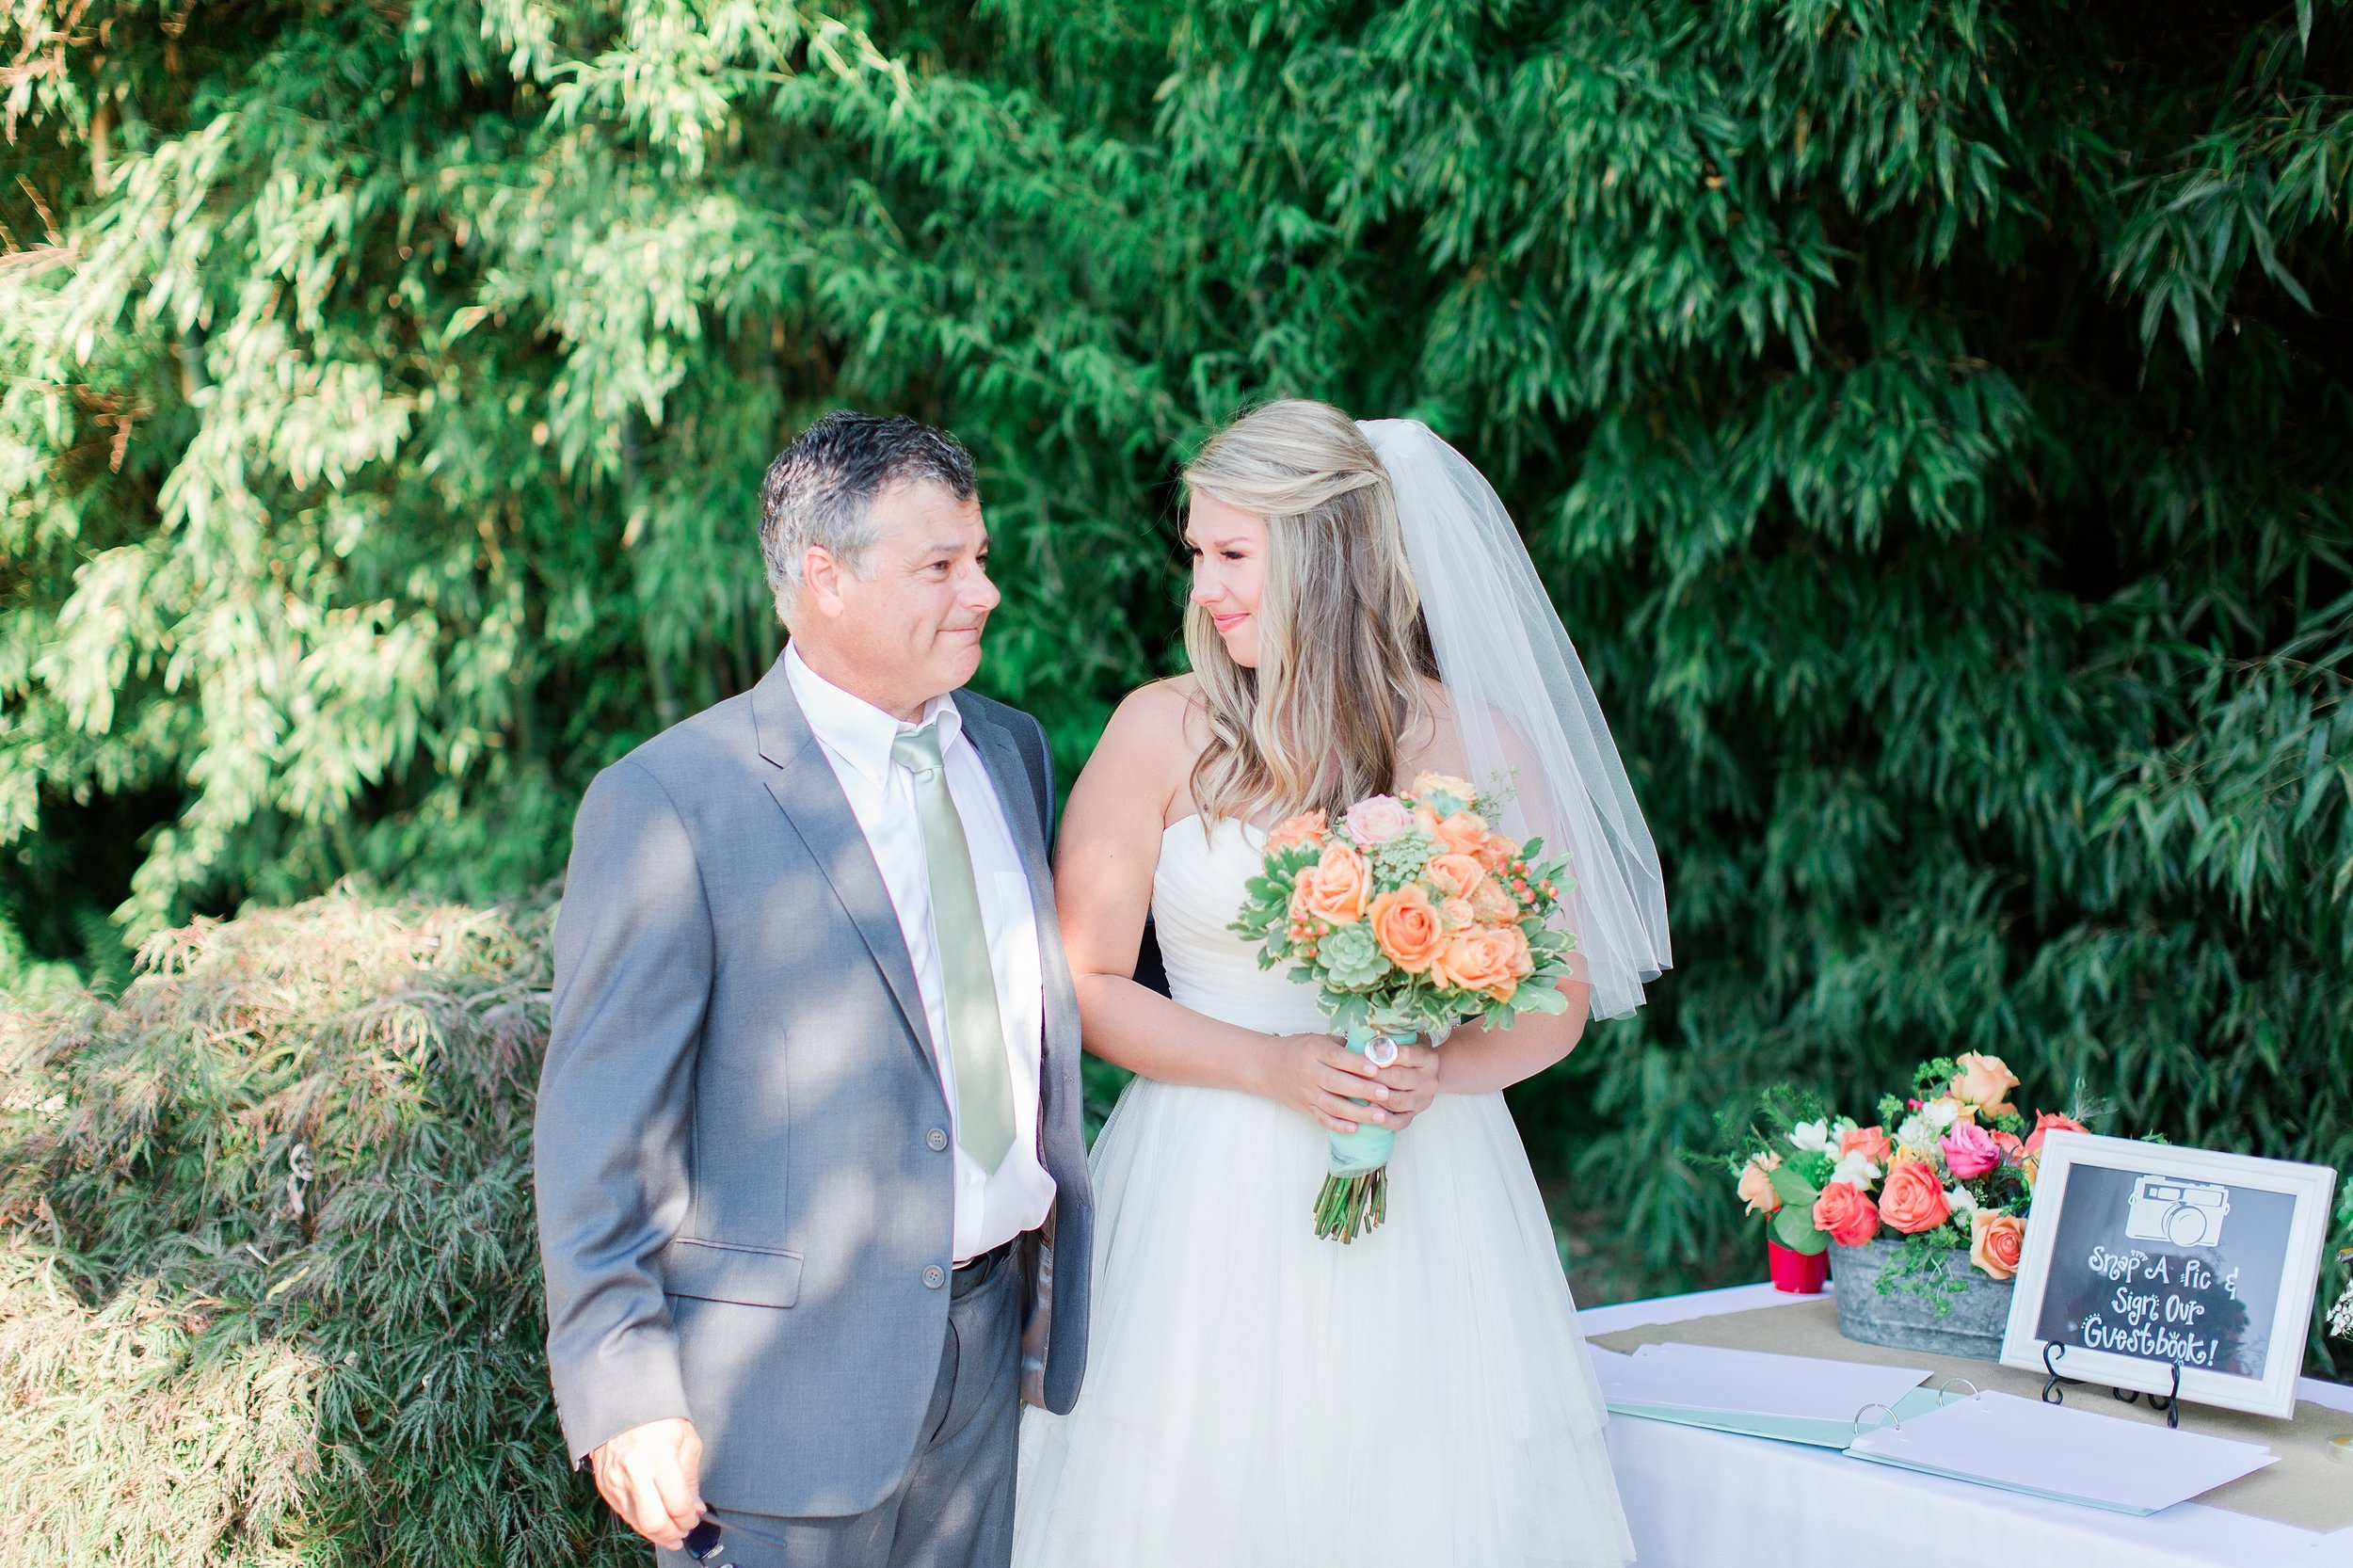 seattle wedding photographer_0200.jpg